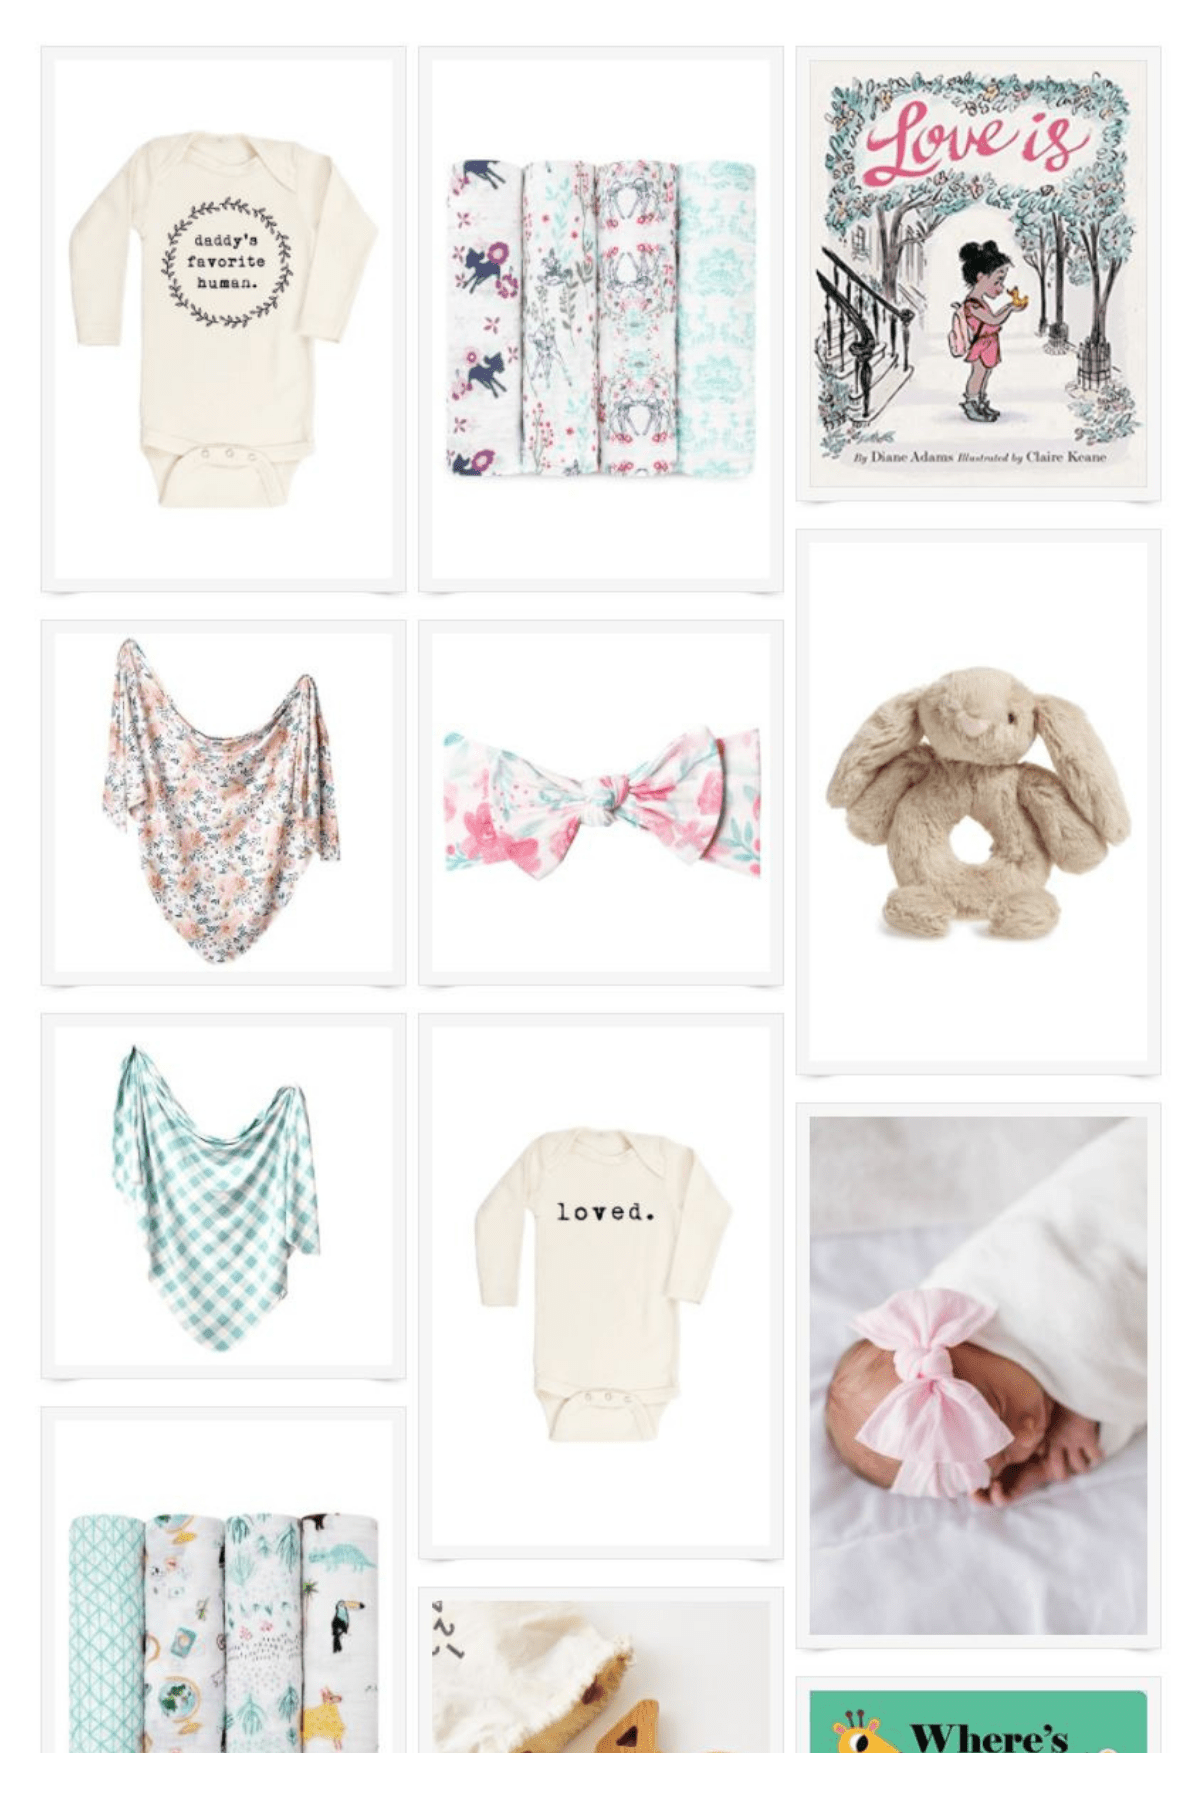 The Best Gift Ideas for Babies 0-3 Months – Heirloom Gifts for Any Newborn